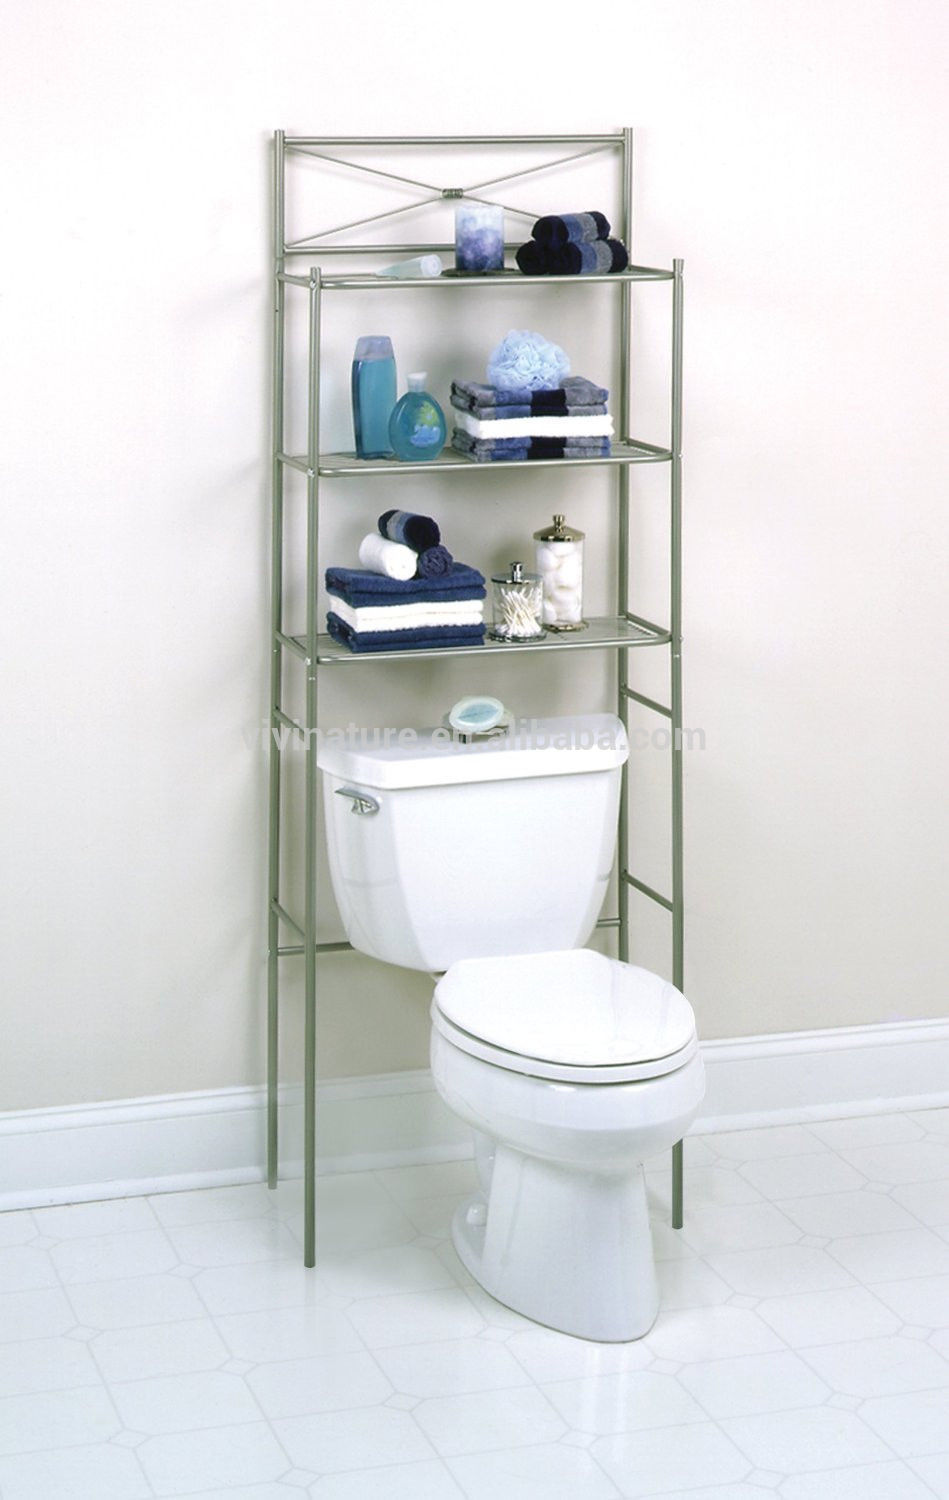 Metal Bathroom Space Saver Shelves Over Toilet Wire Shelf Storage ...